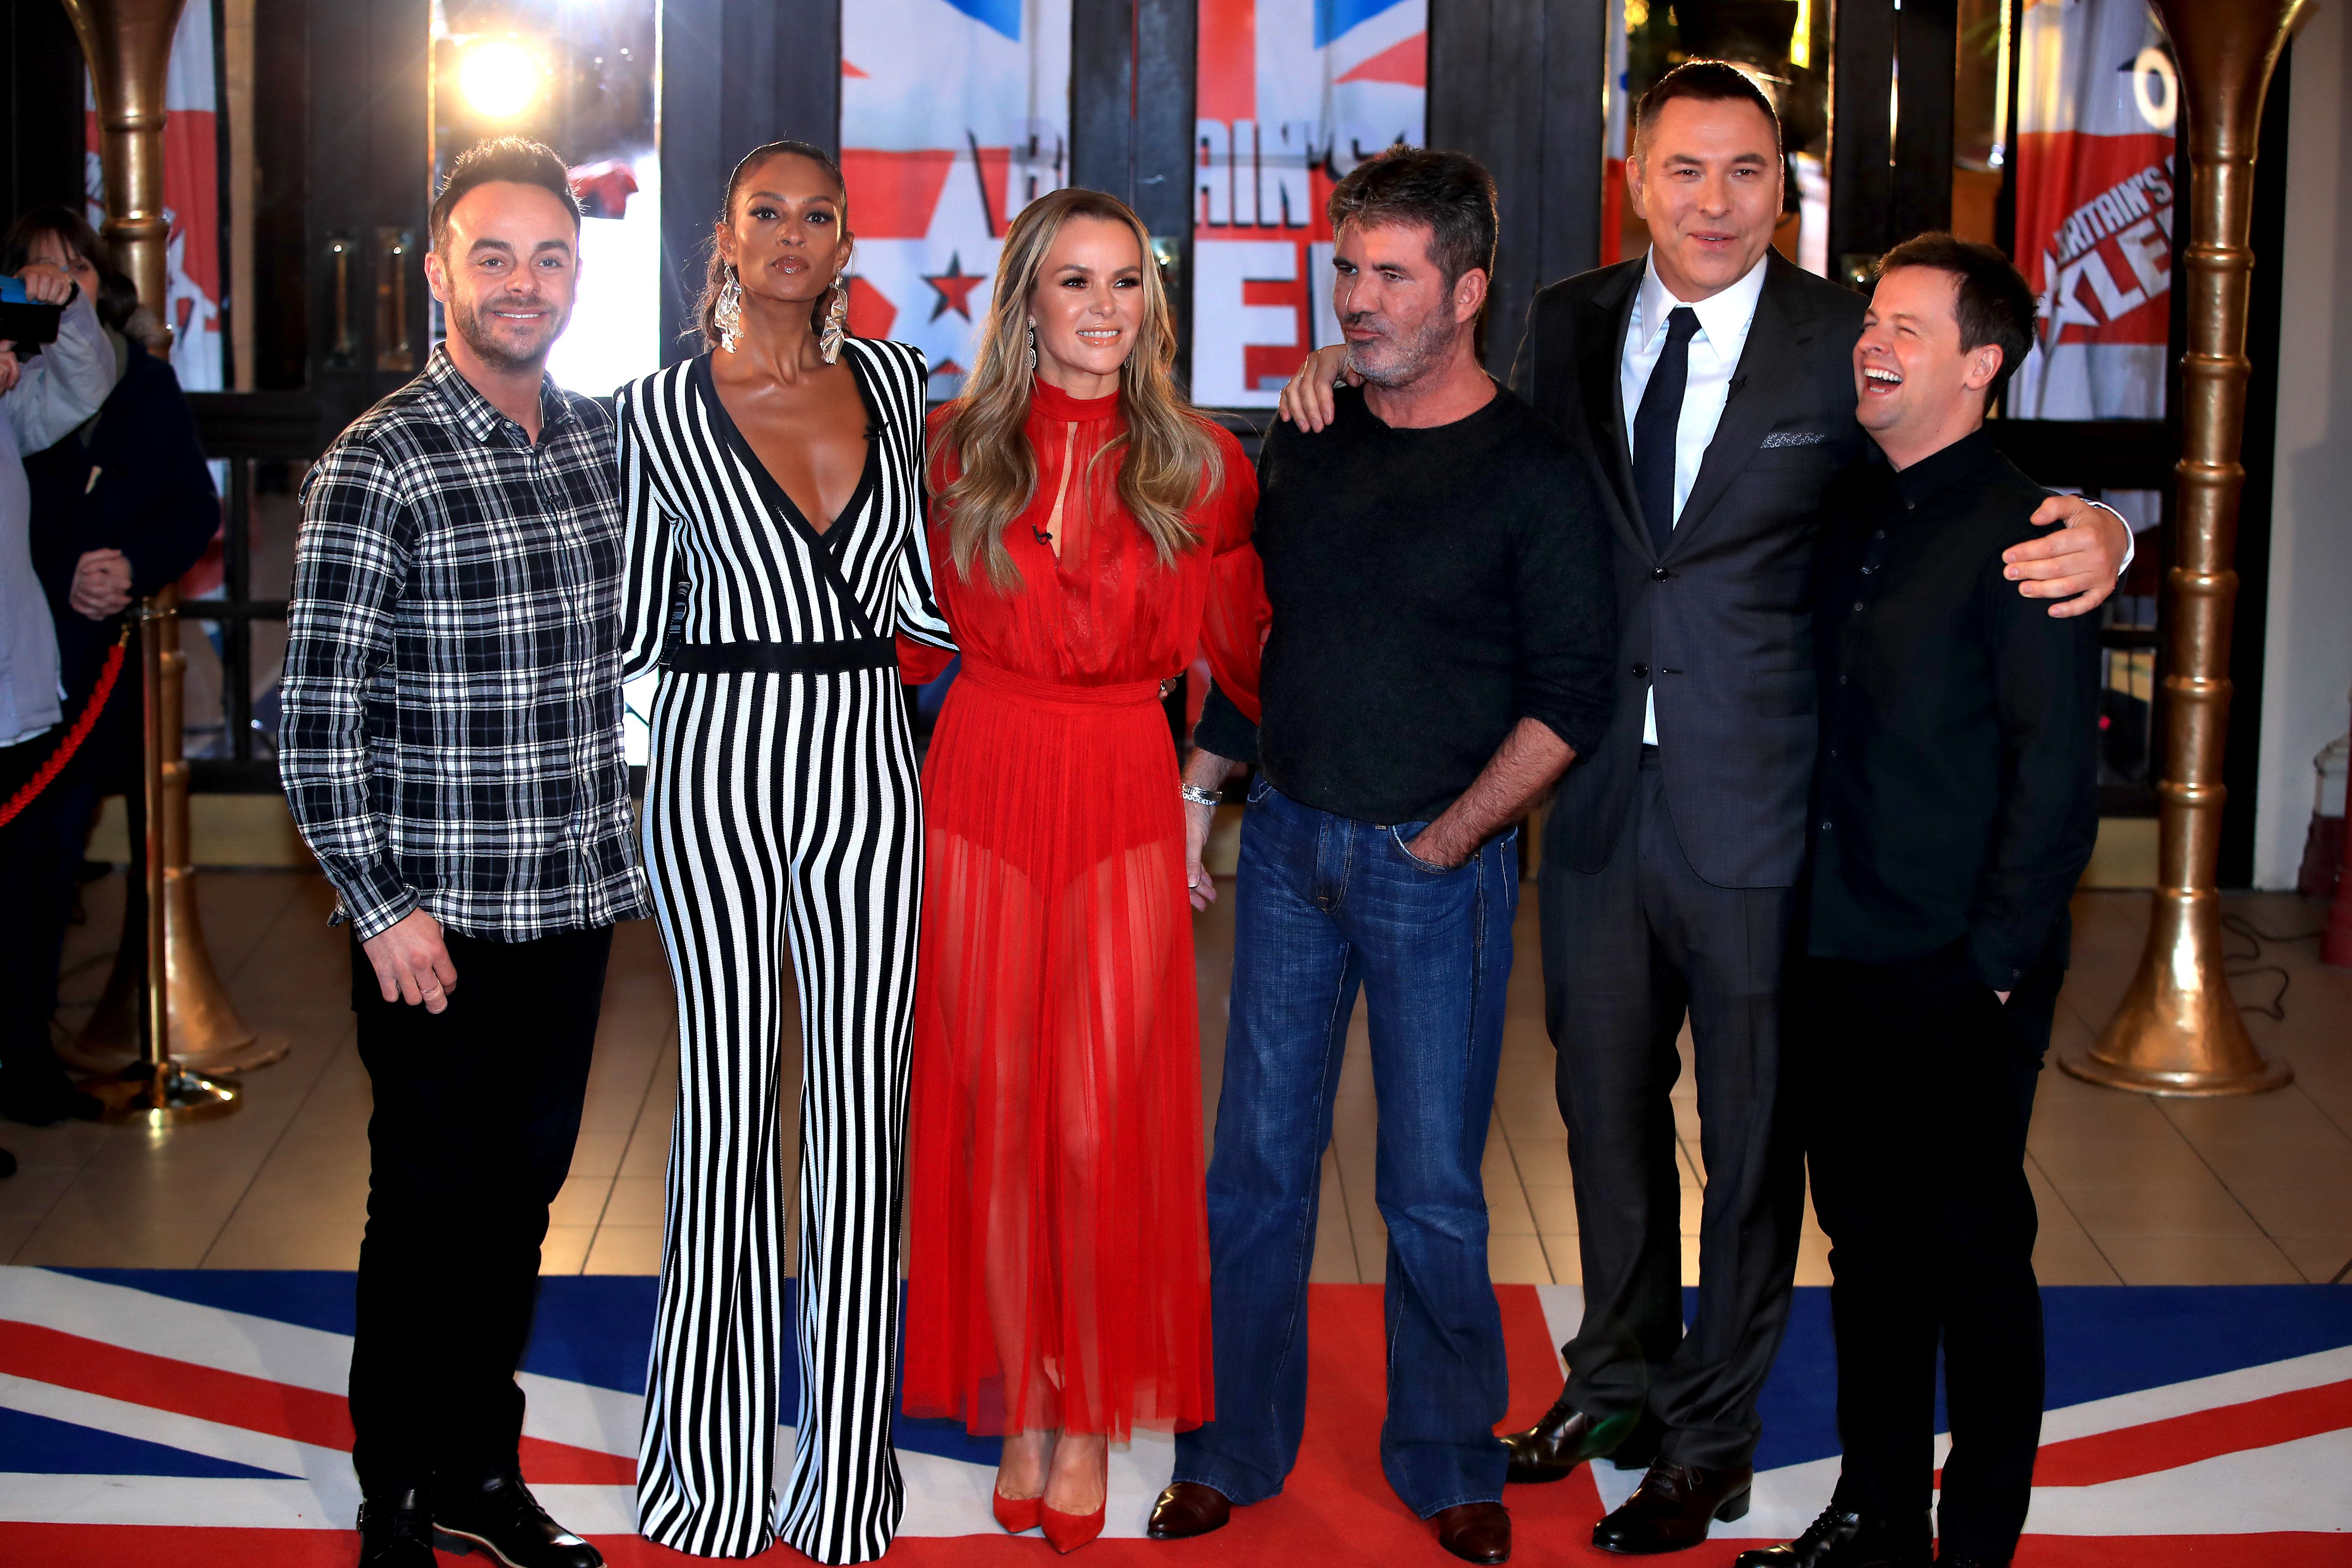 The 'BGT' judges will have their private conversations broadcast on the show